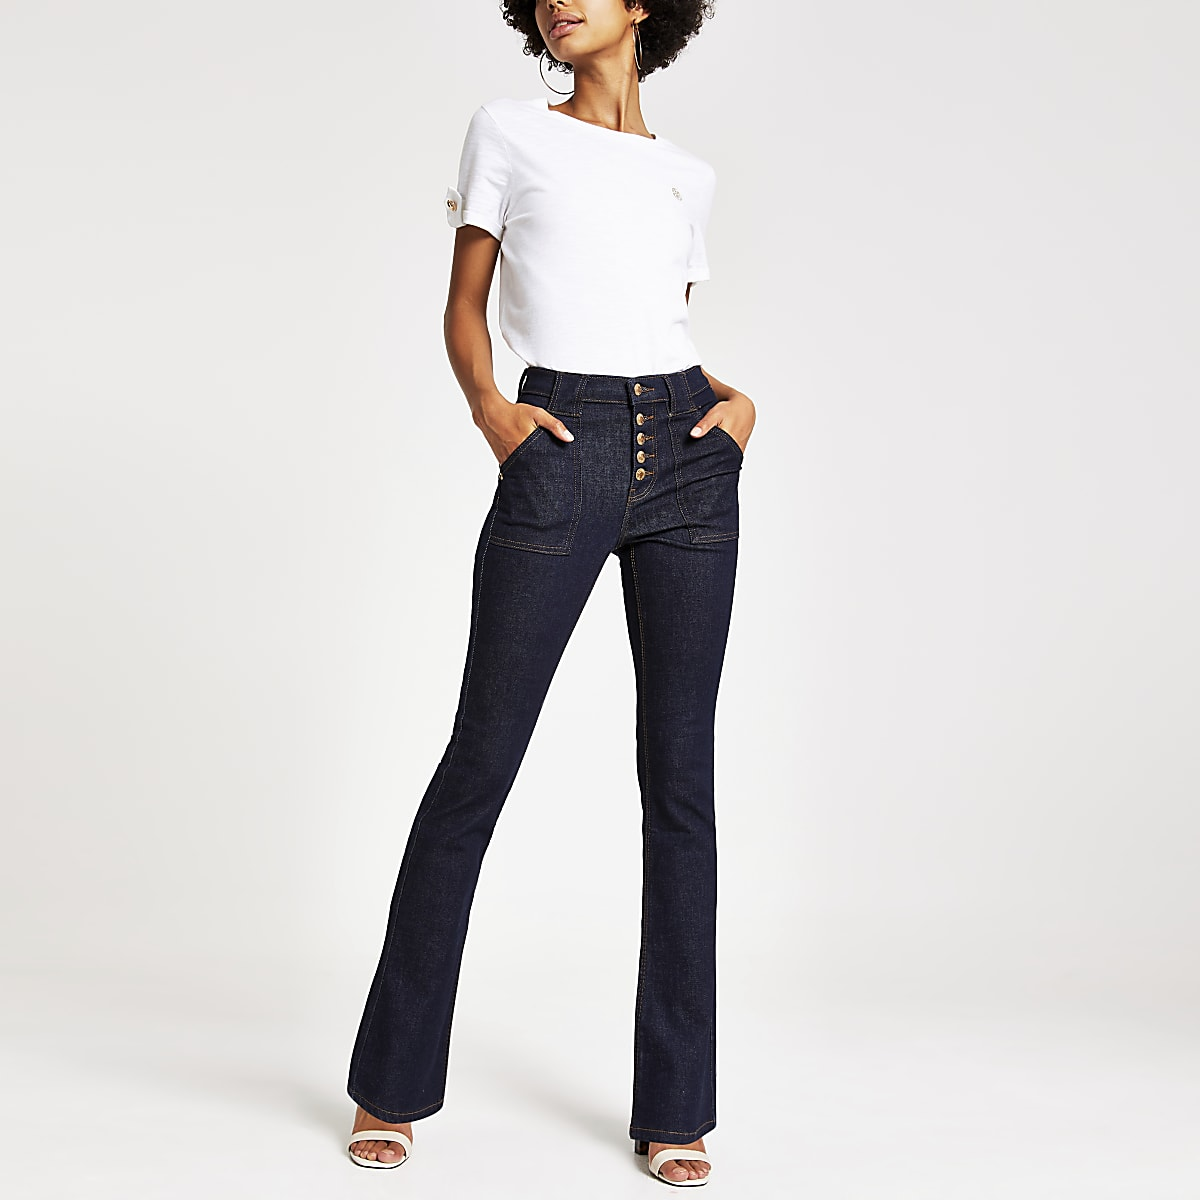 Dunkle Bootcut-Jeans im Utility-Look